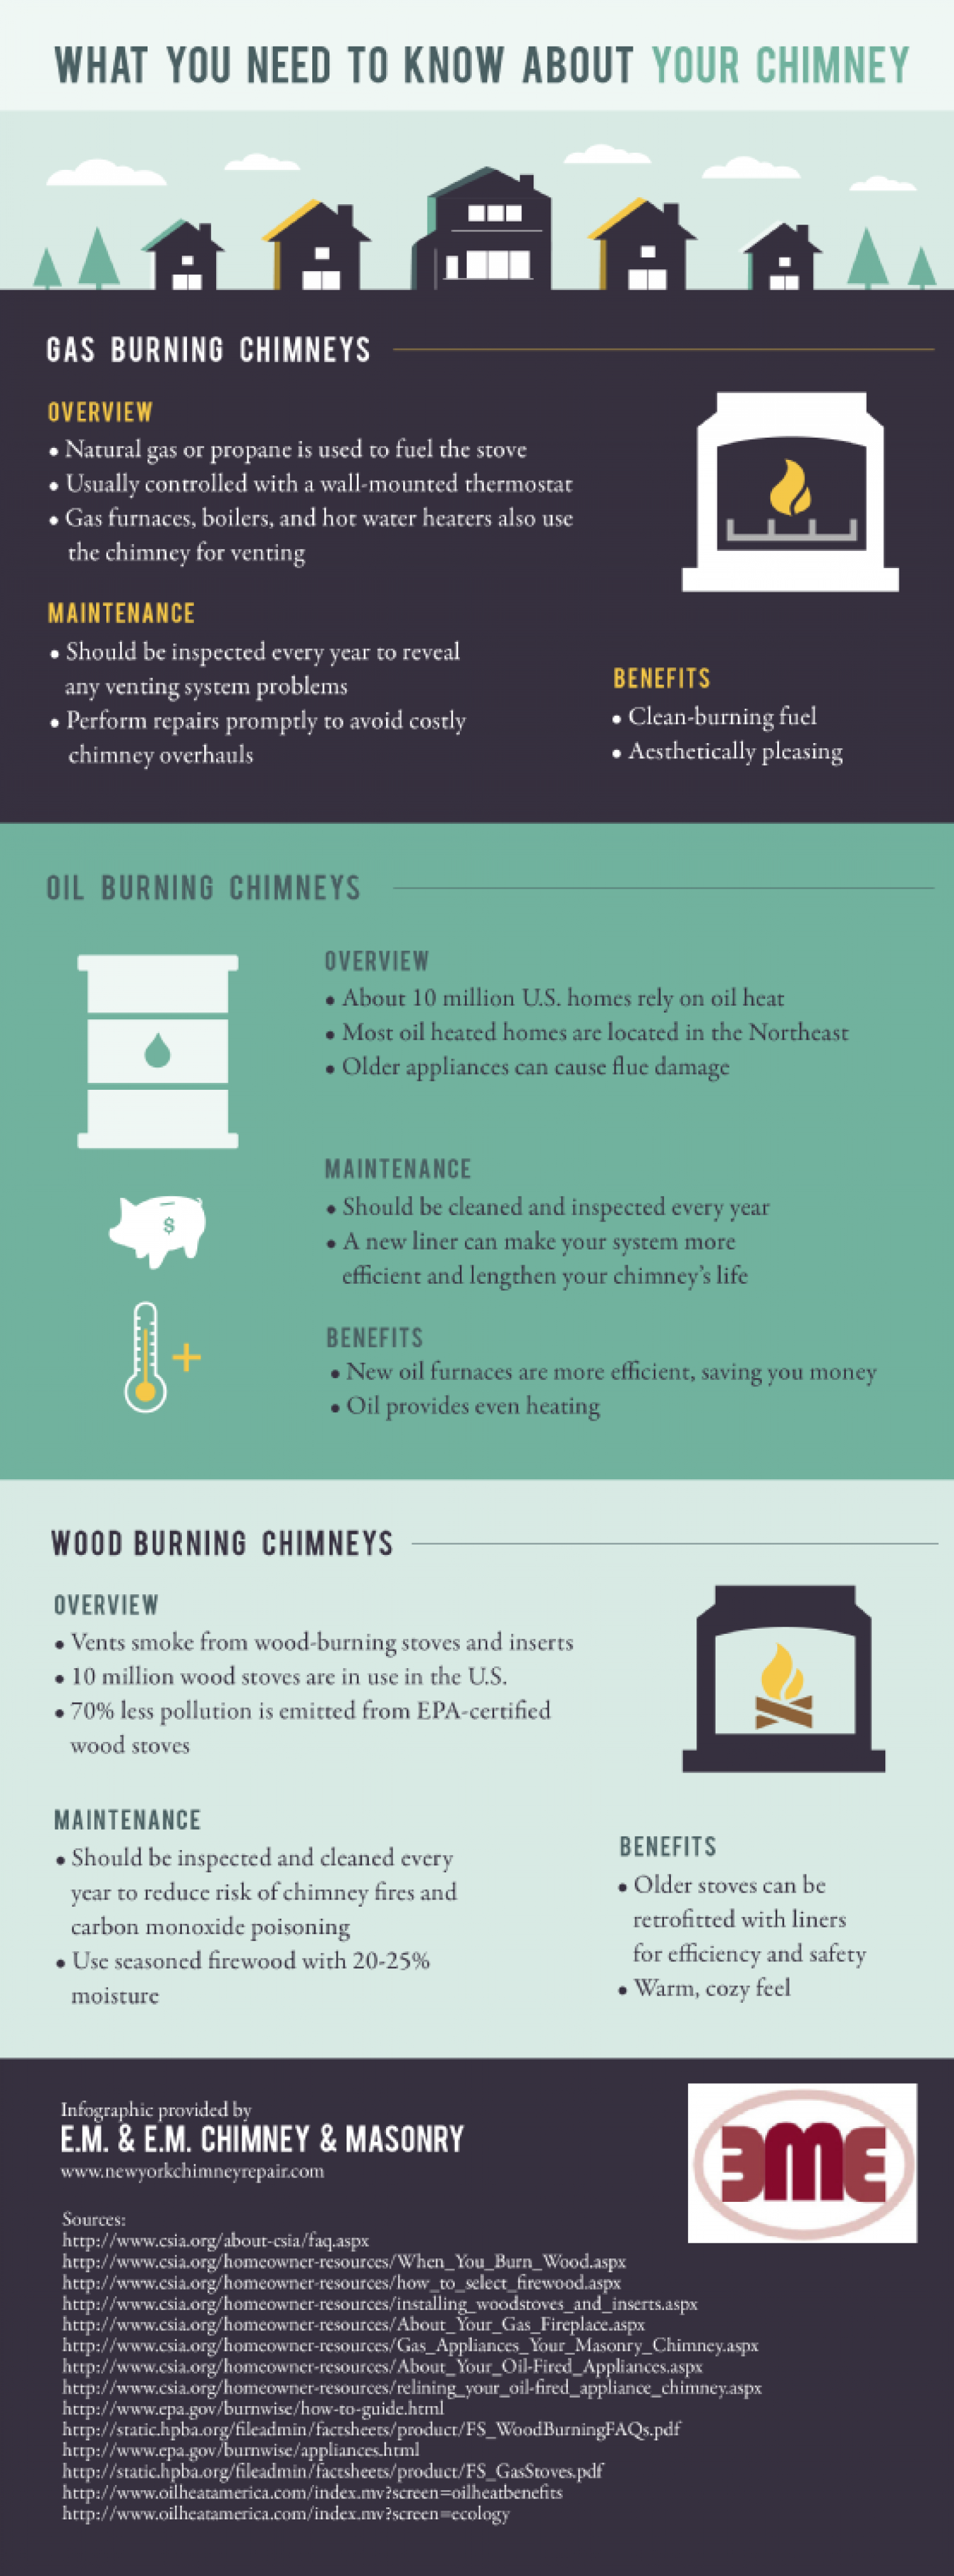 What You Need to Know about Your Chimney Infographic